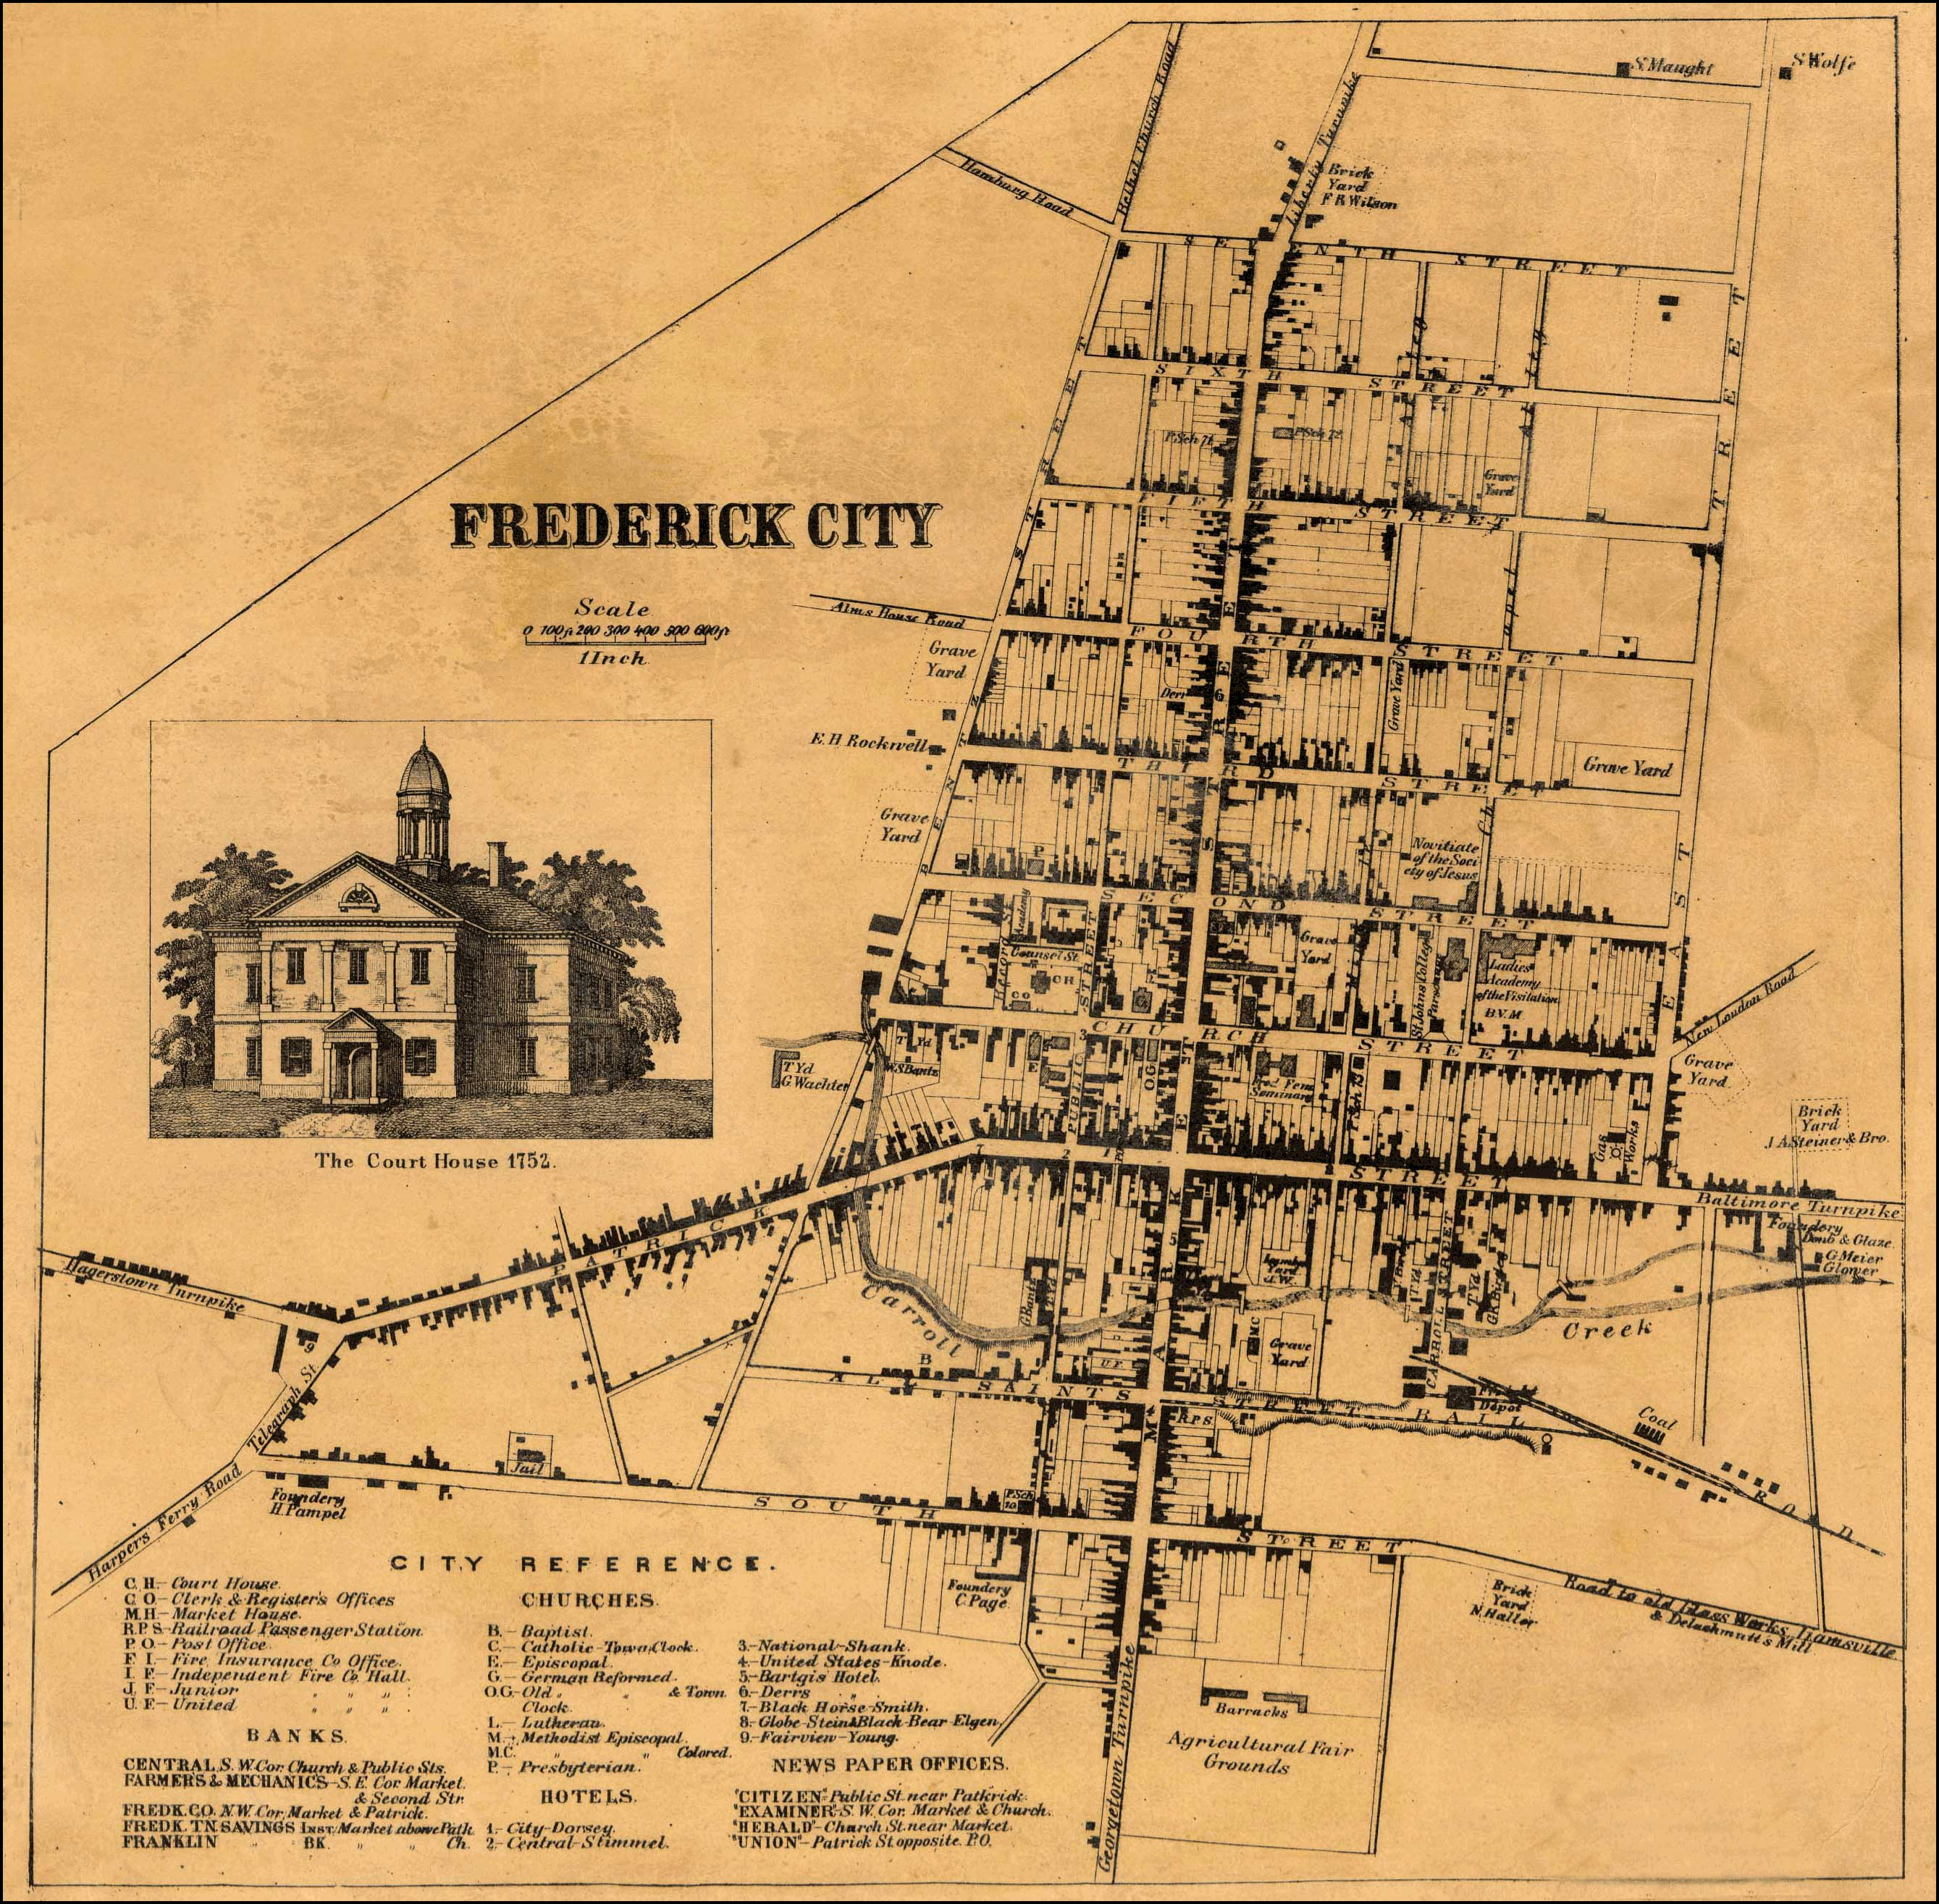 of Frederick City from Isaac Bond Map of Frederick County 1858